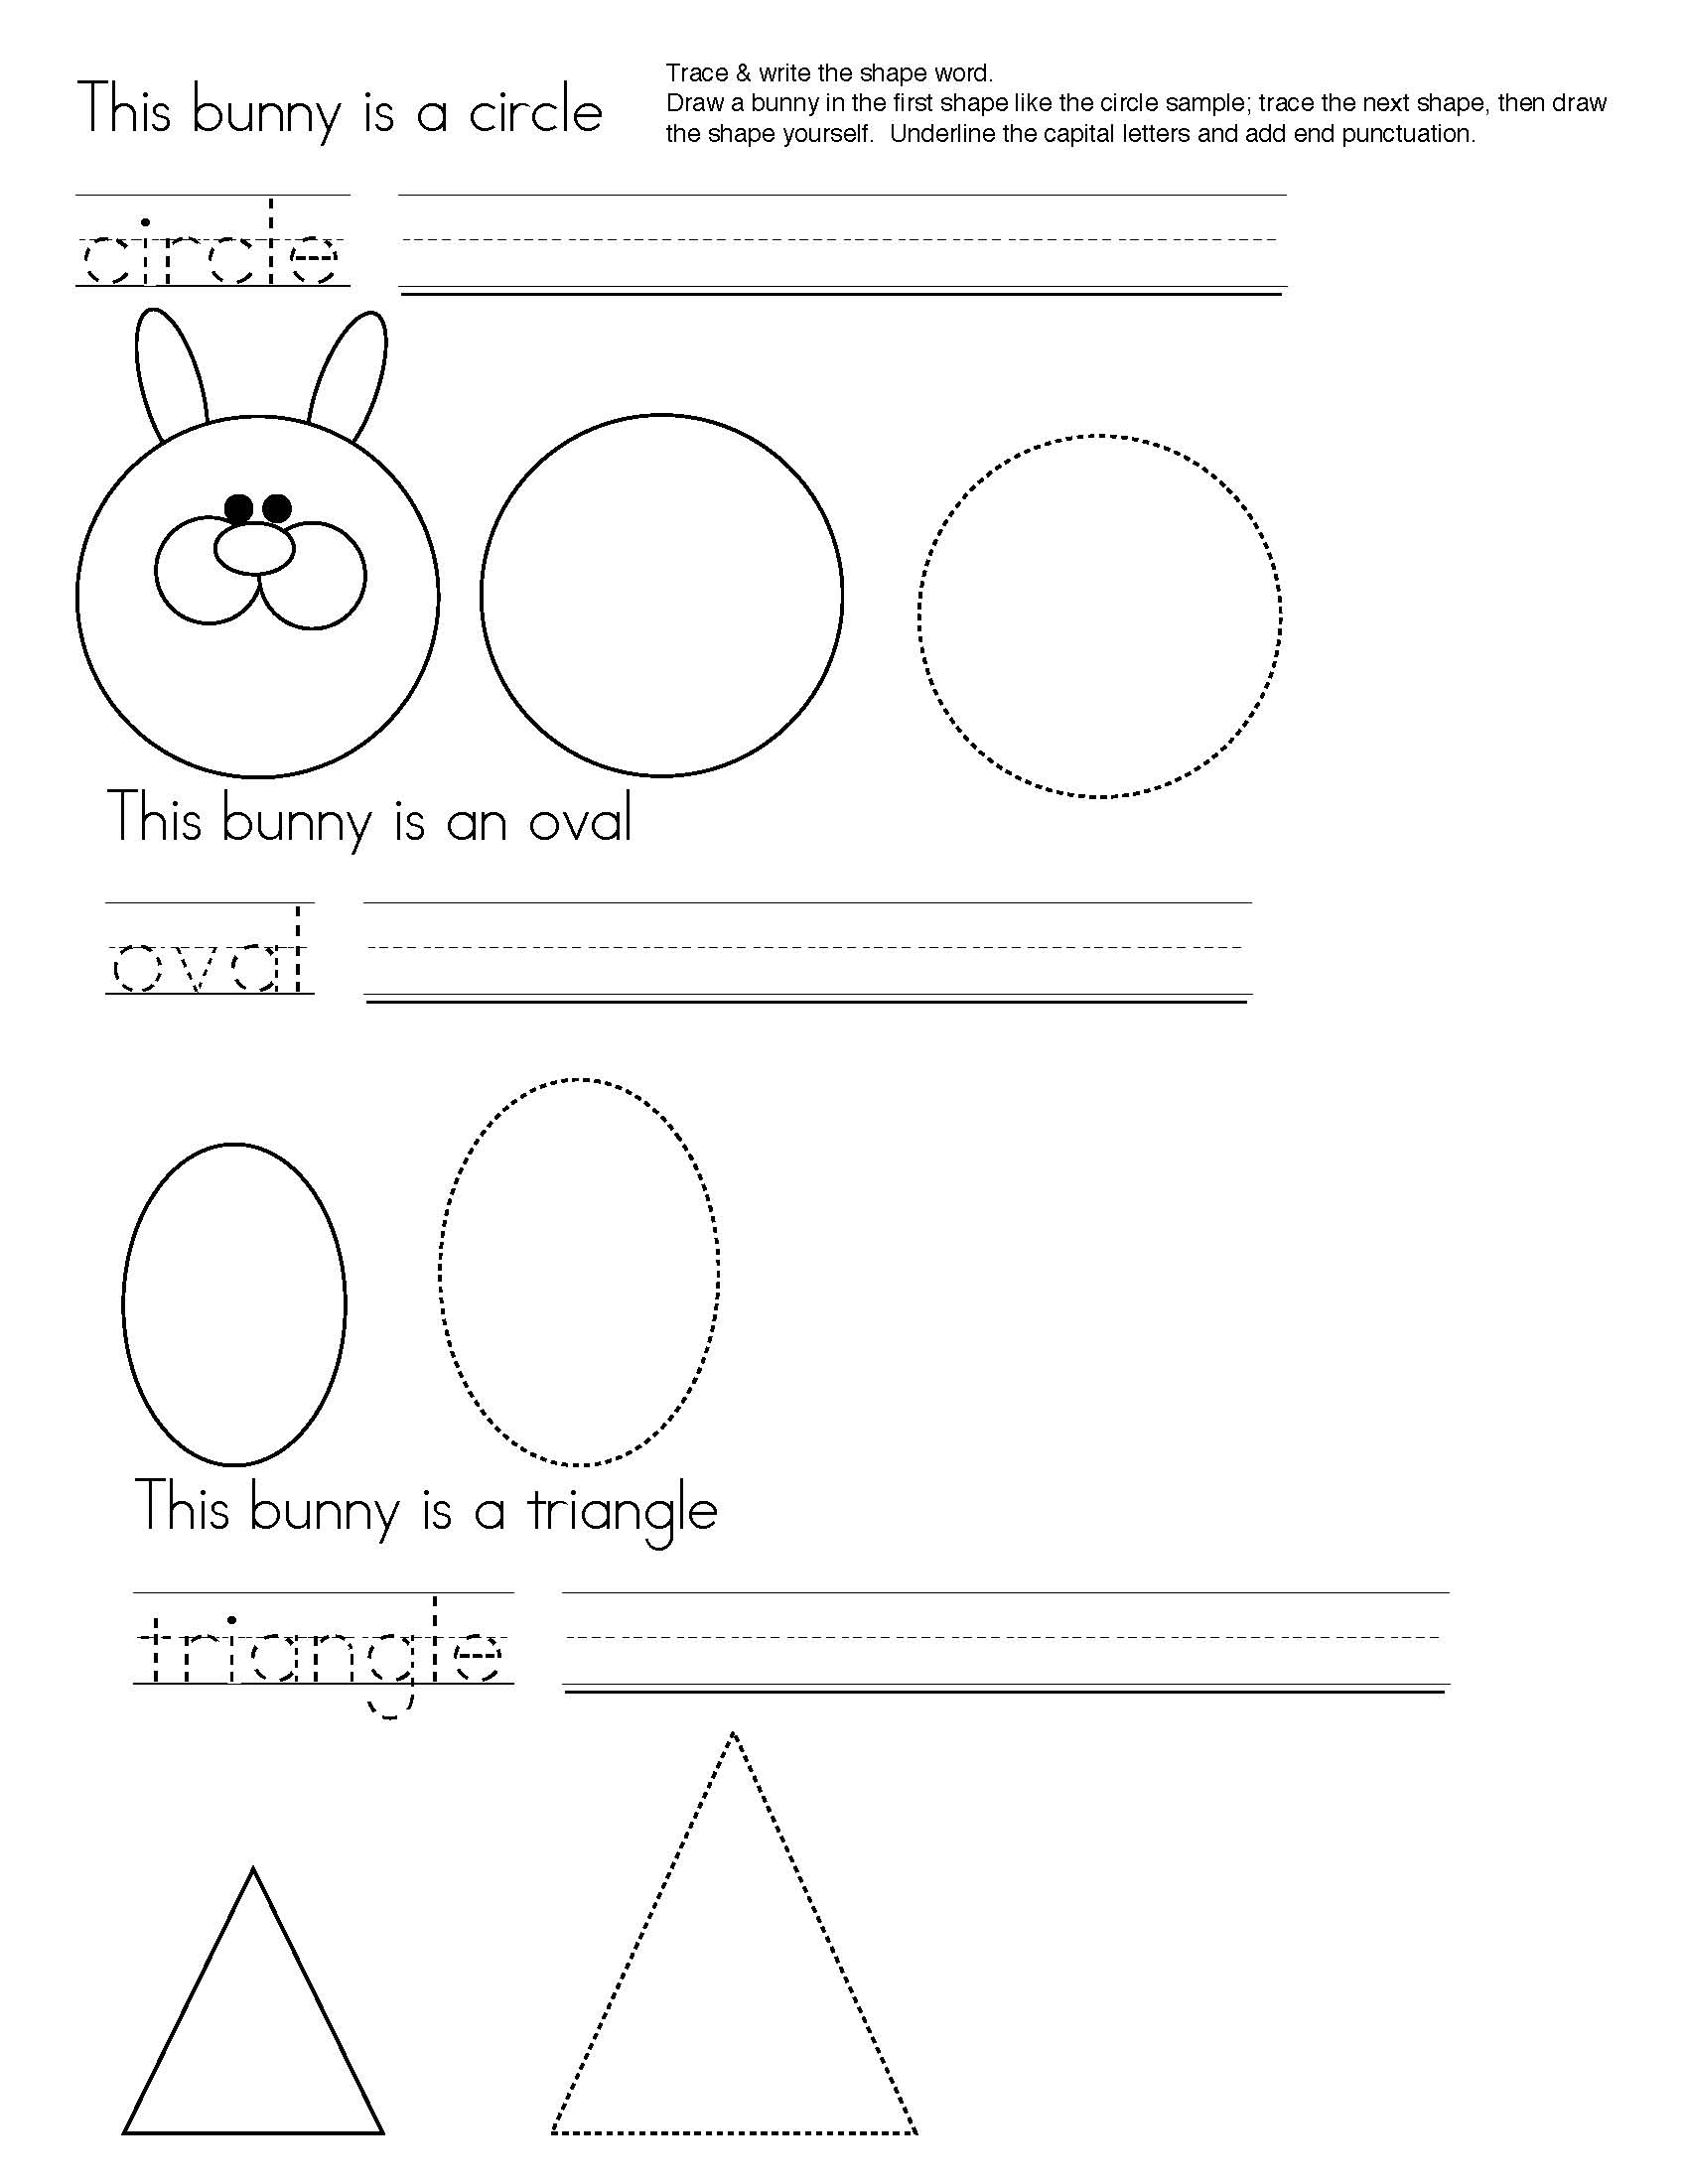 bunny crafts, spring crafts, spring activities, common core spring, common core shapes, shape activities, shape posters, shape booklet, shape crafts, bunny crafts, shape worksheets, attributes worksheets, shape graph, graphing favorite shapes, bunny shapes, shape animals,